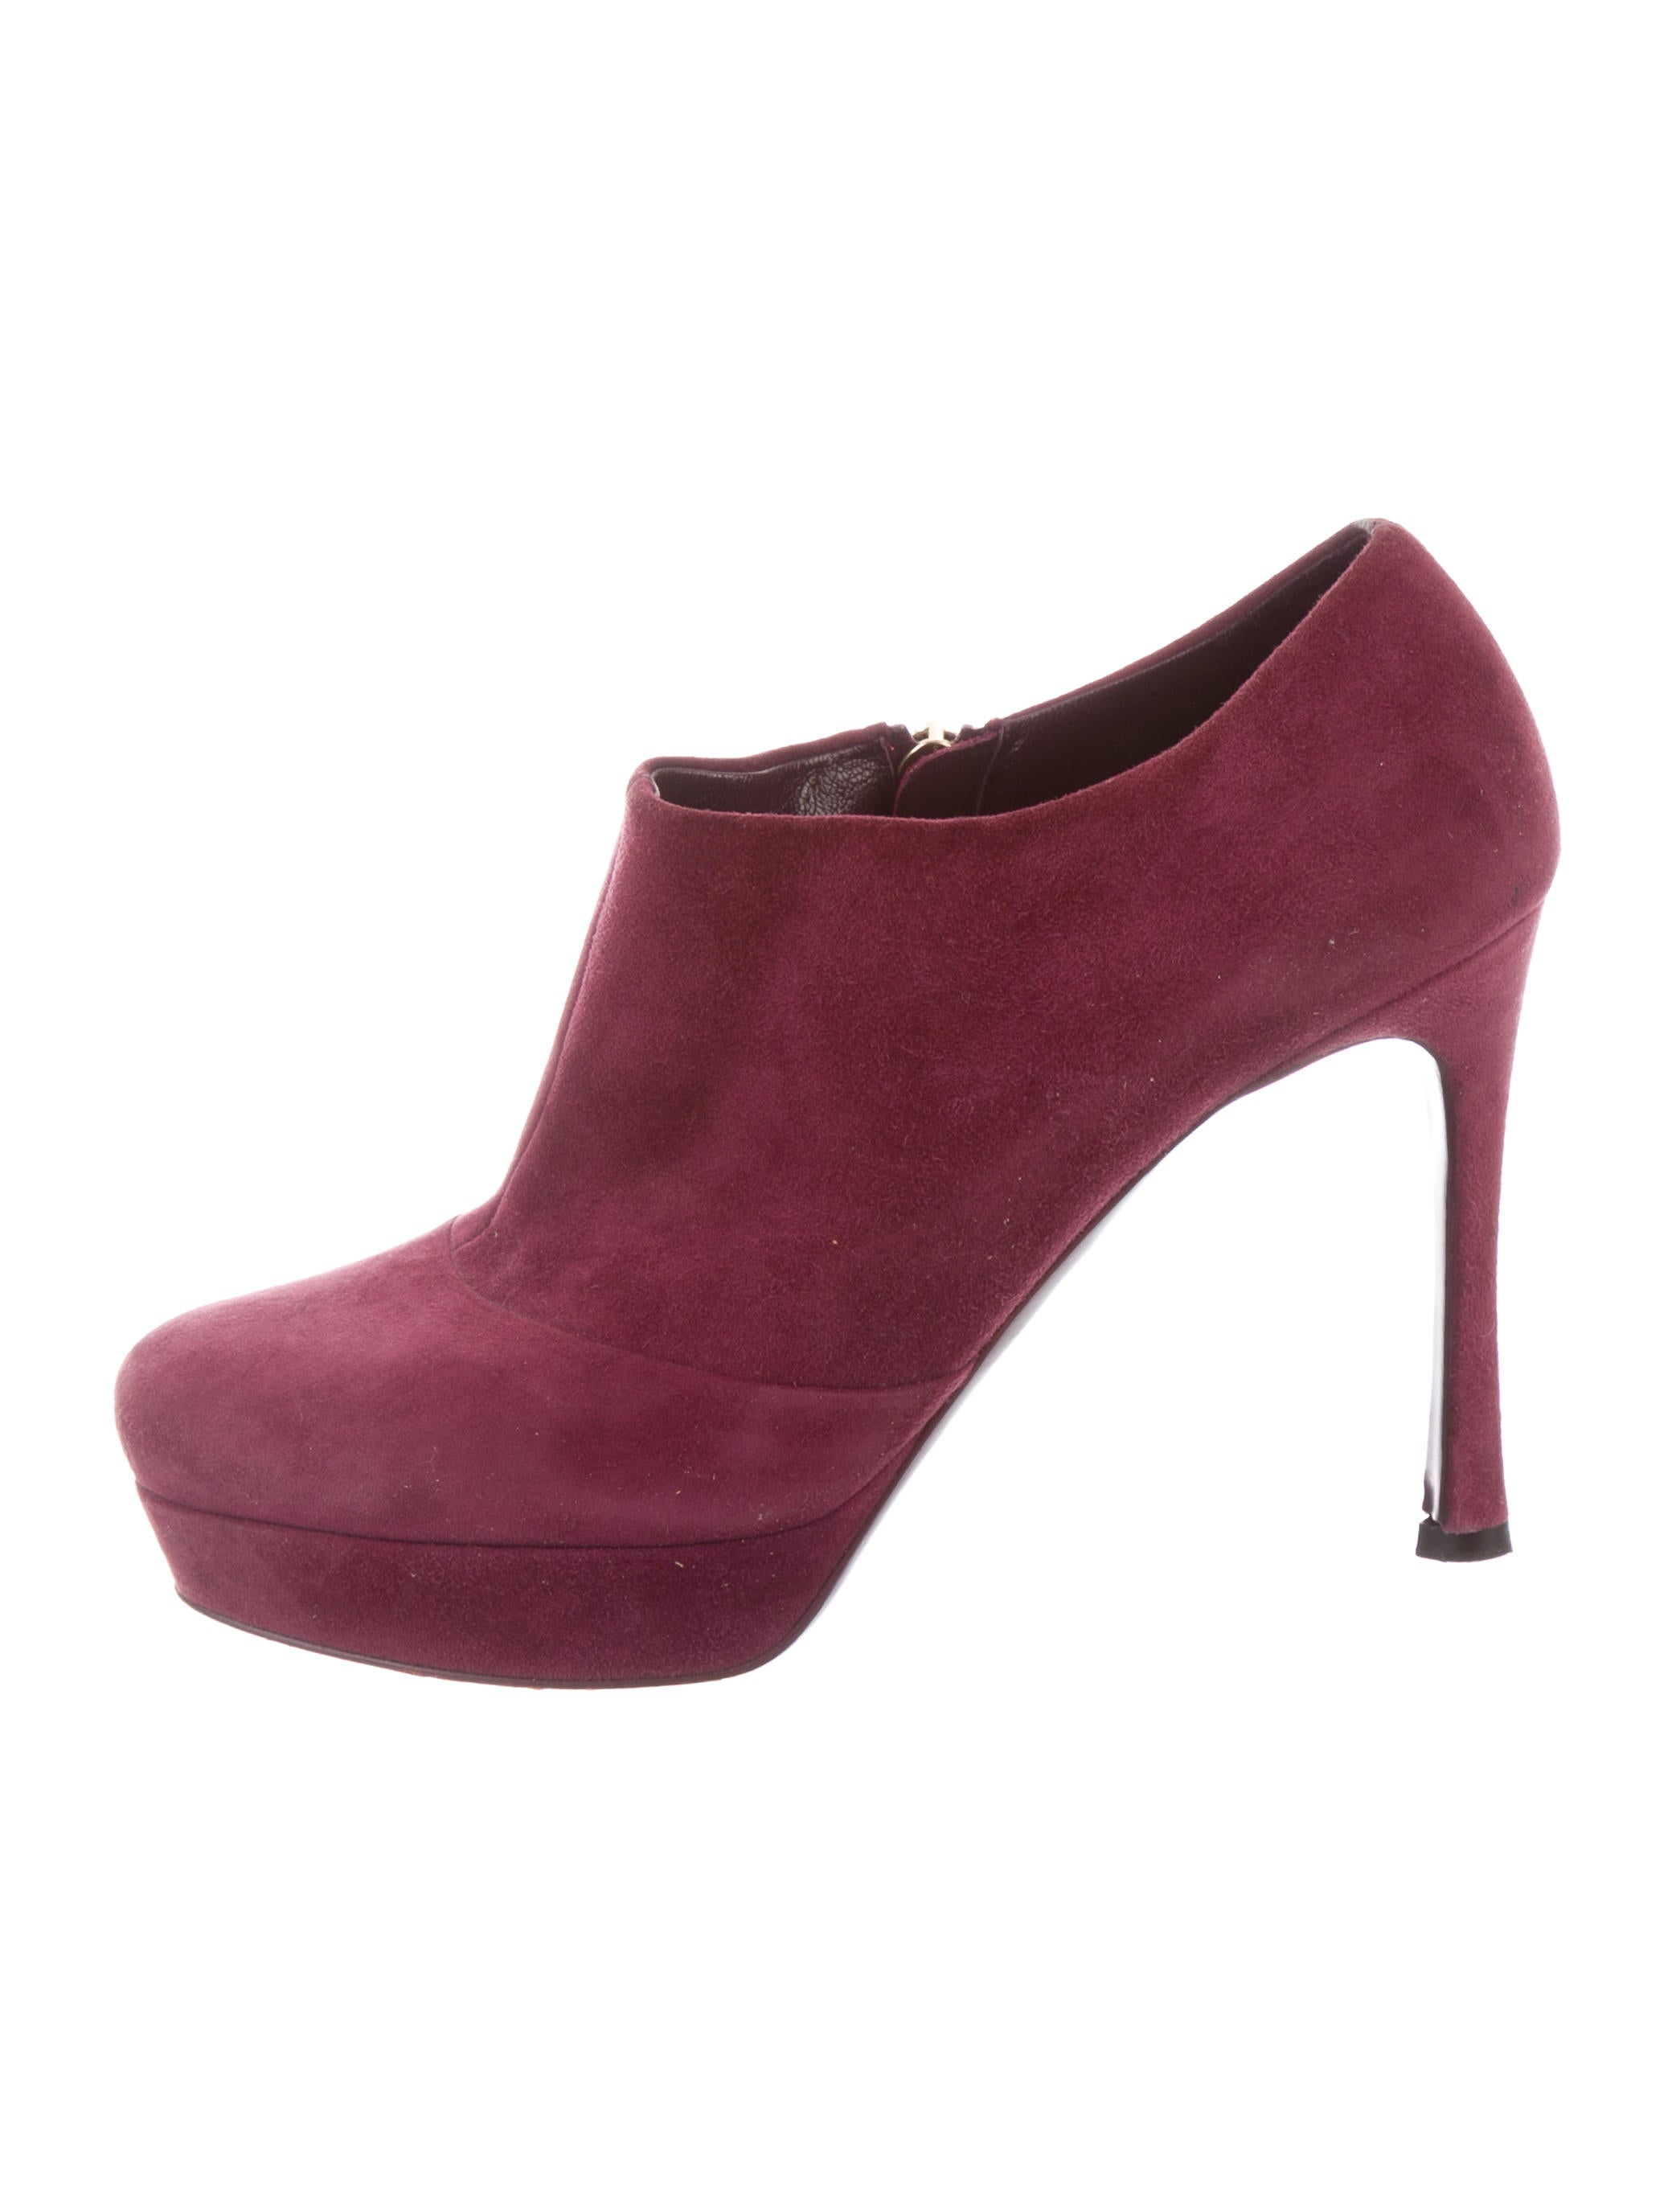 Yves Saint Laurent Suede Round-Toe Booties cheap sale 2014 unisex 2014 newest online UQZonkD7bF